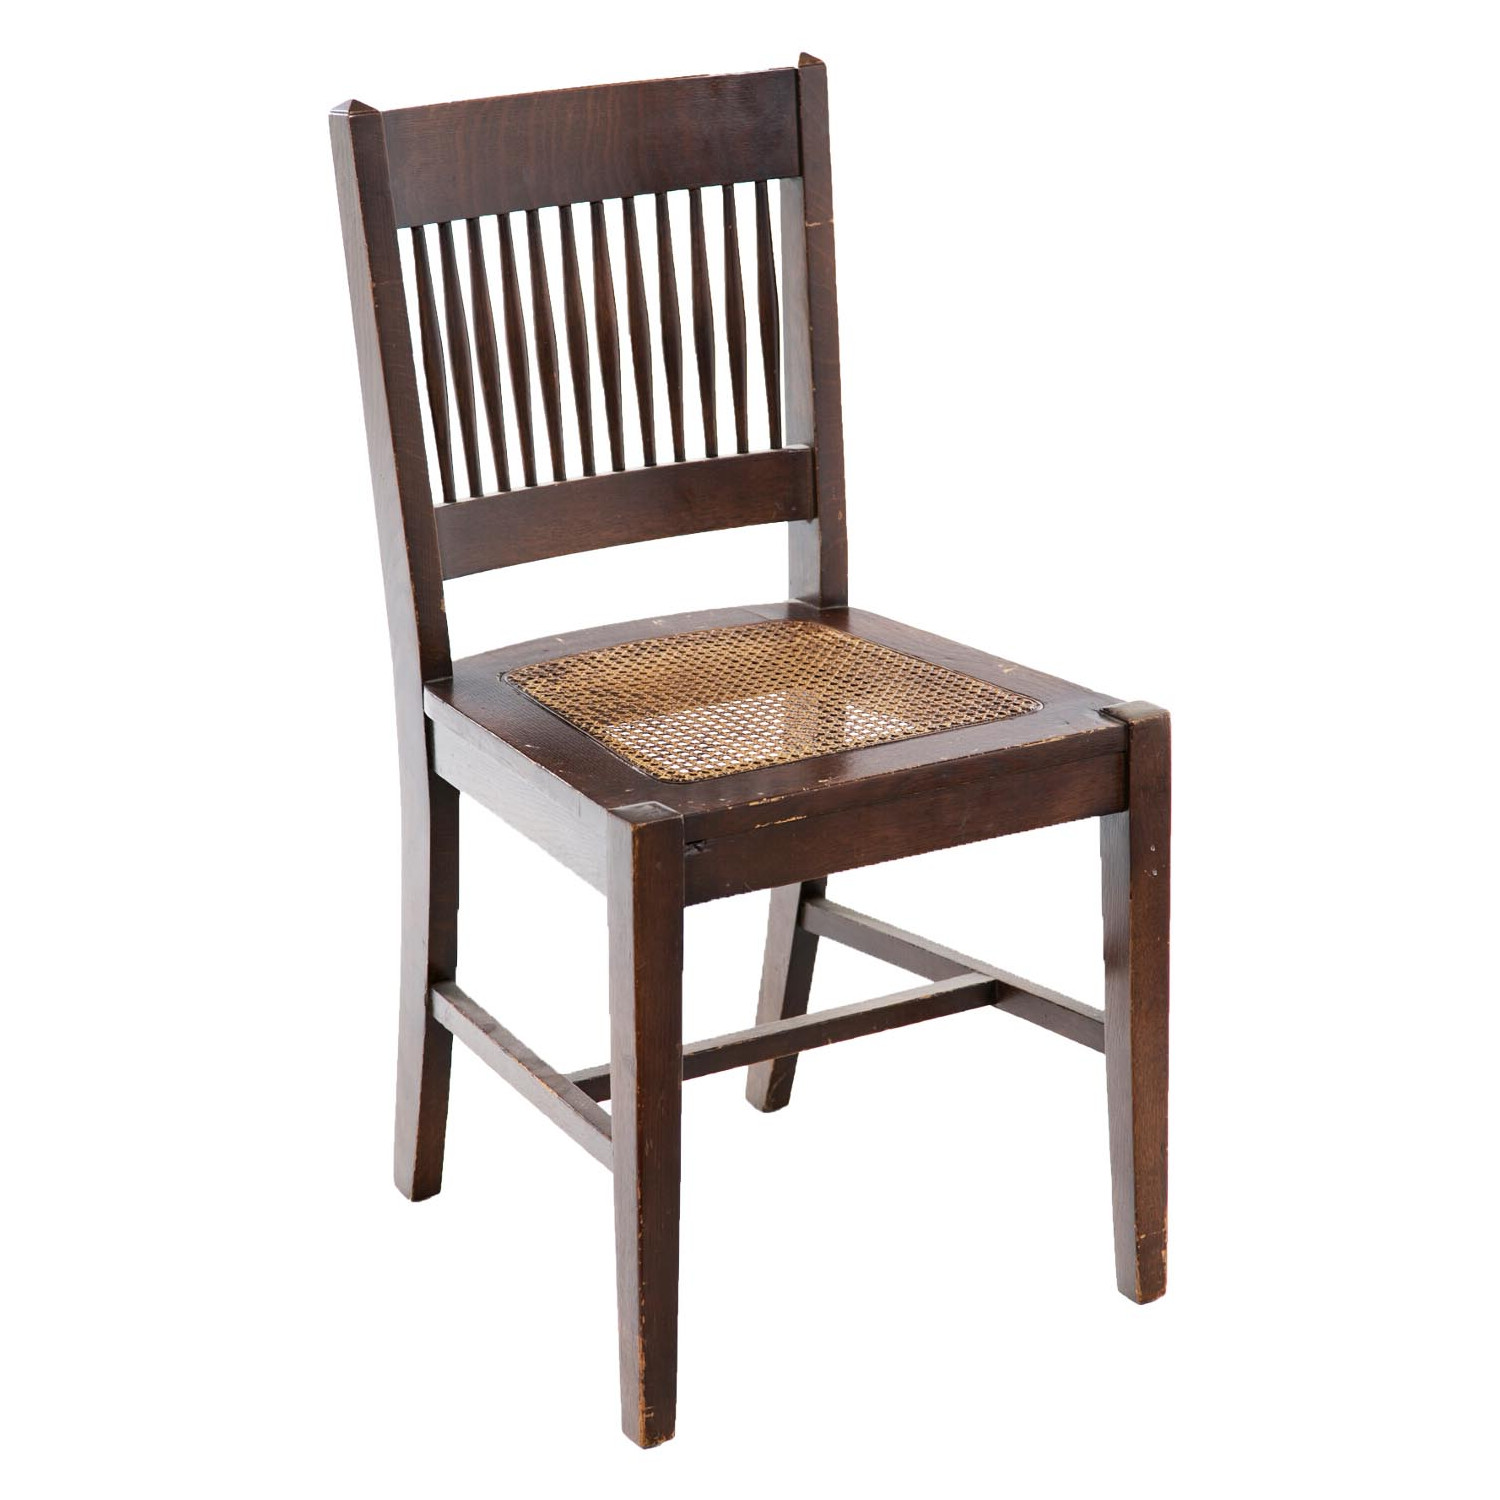 Arts and Crafts Caned Side Chair | Antique and Art Exchange - And Crafts Caned Side Chair Antique And Art Exchange